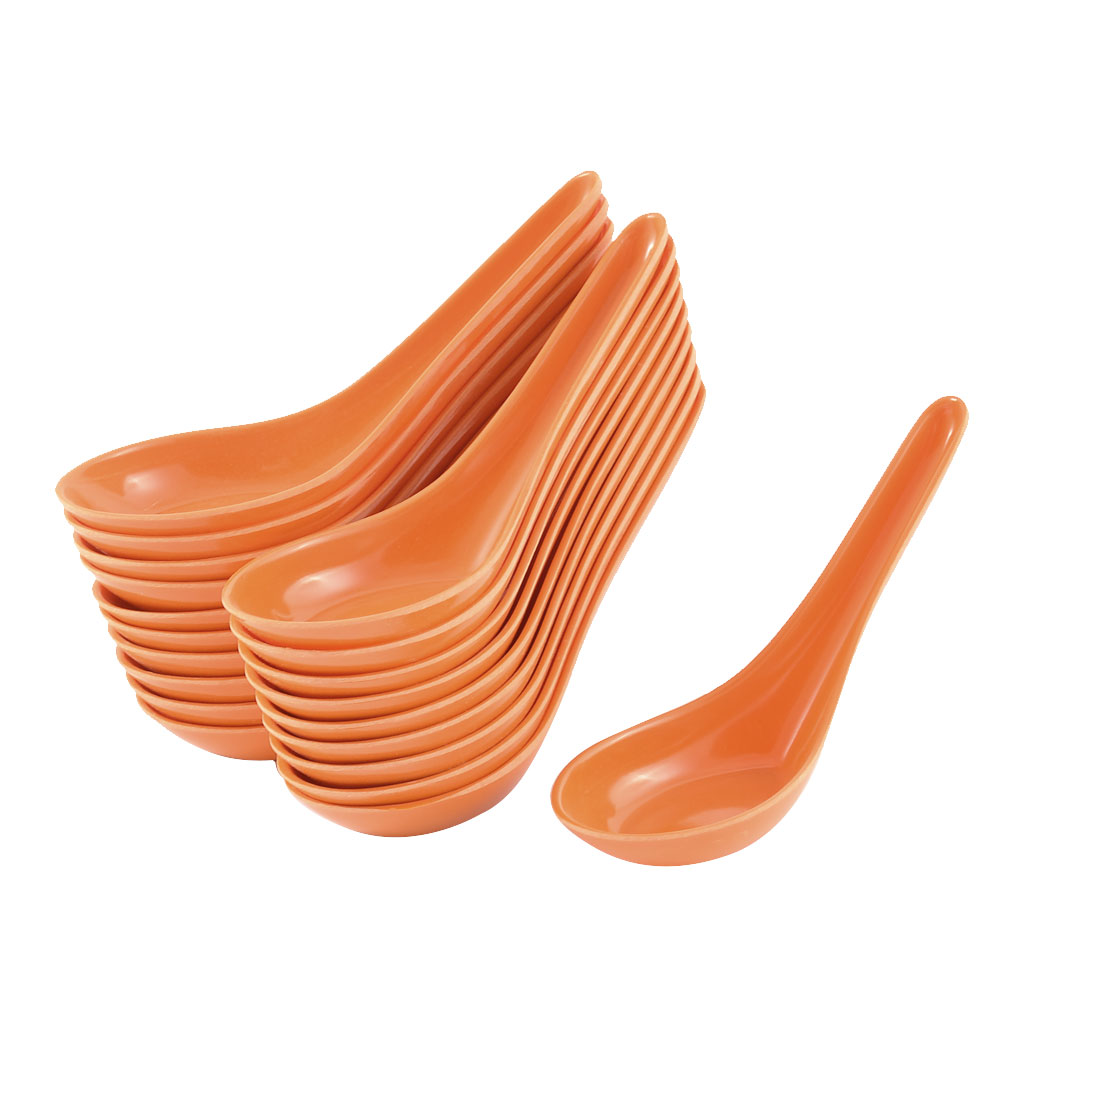 Kitchen Restaurant Tableware Plastic Stirring Food Spoon Orangered 20pcs